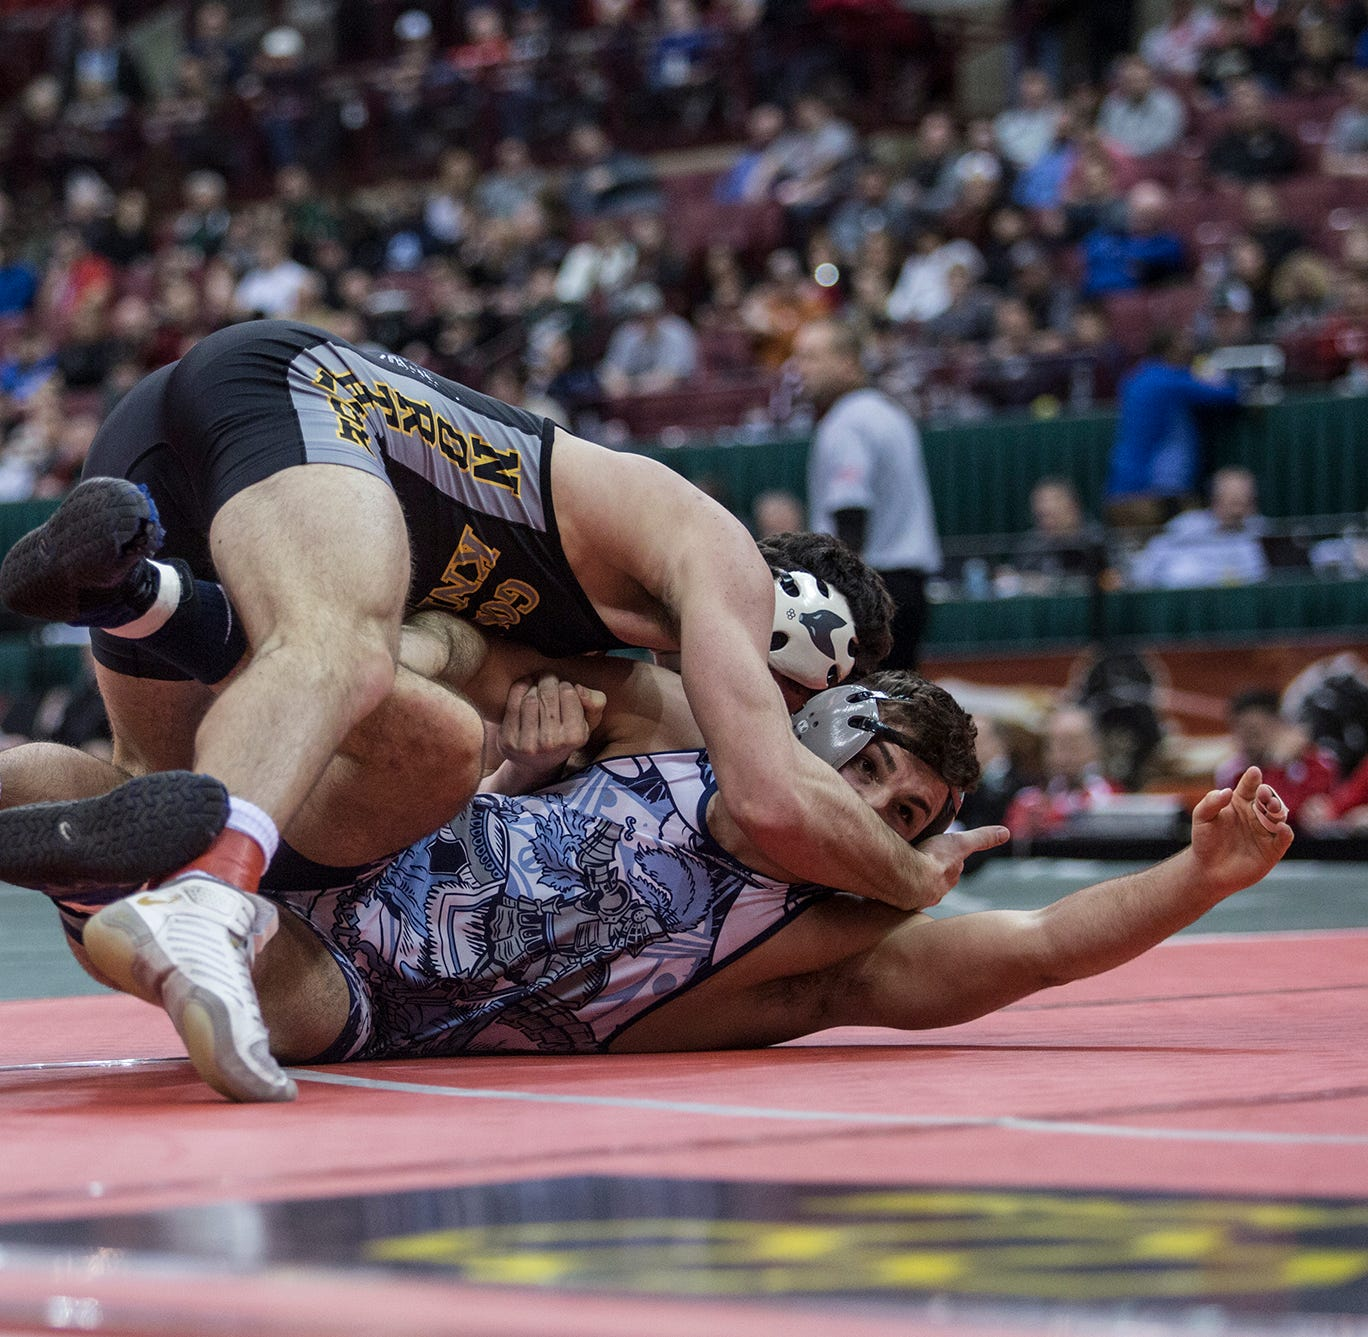 Northmor's Conor Becker wrestles his way to state championship